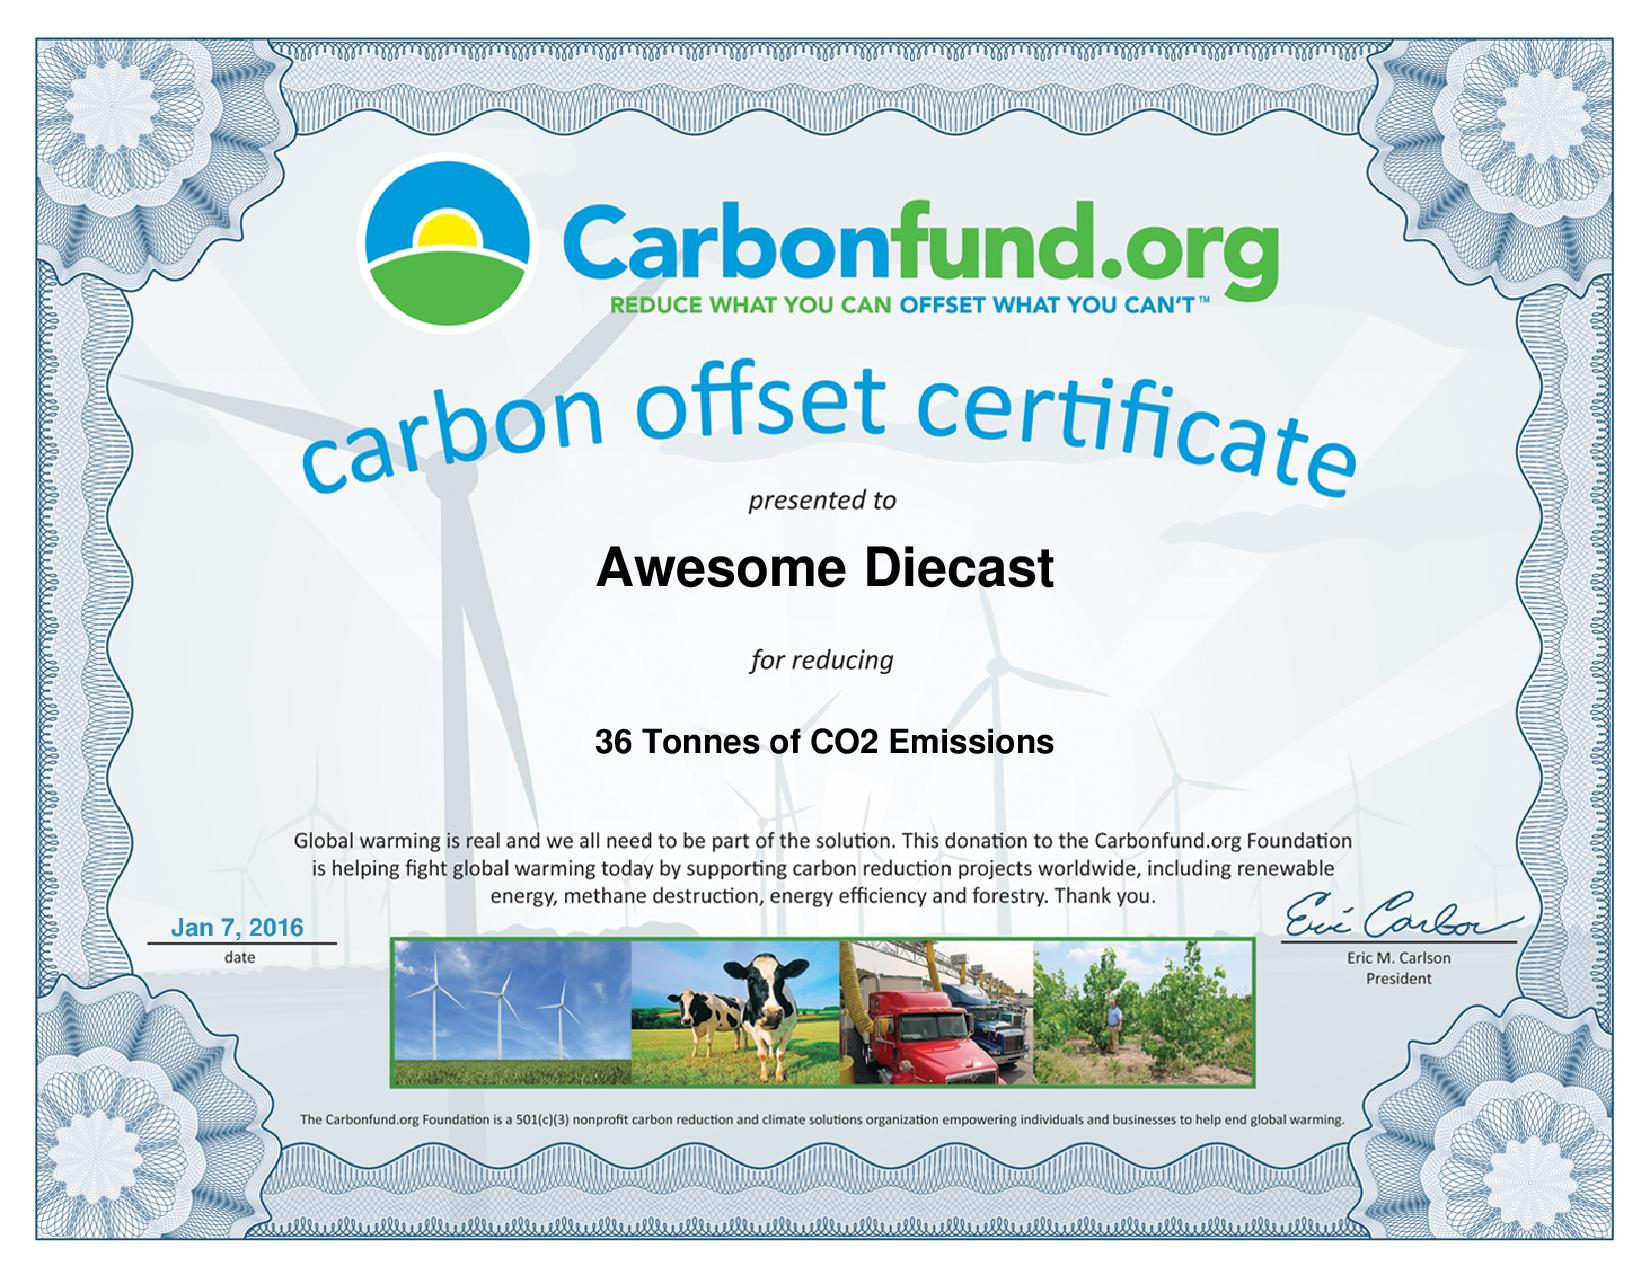 carbonfundorg-certificate-page-001-1-.jpg